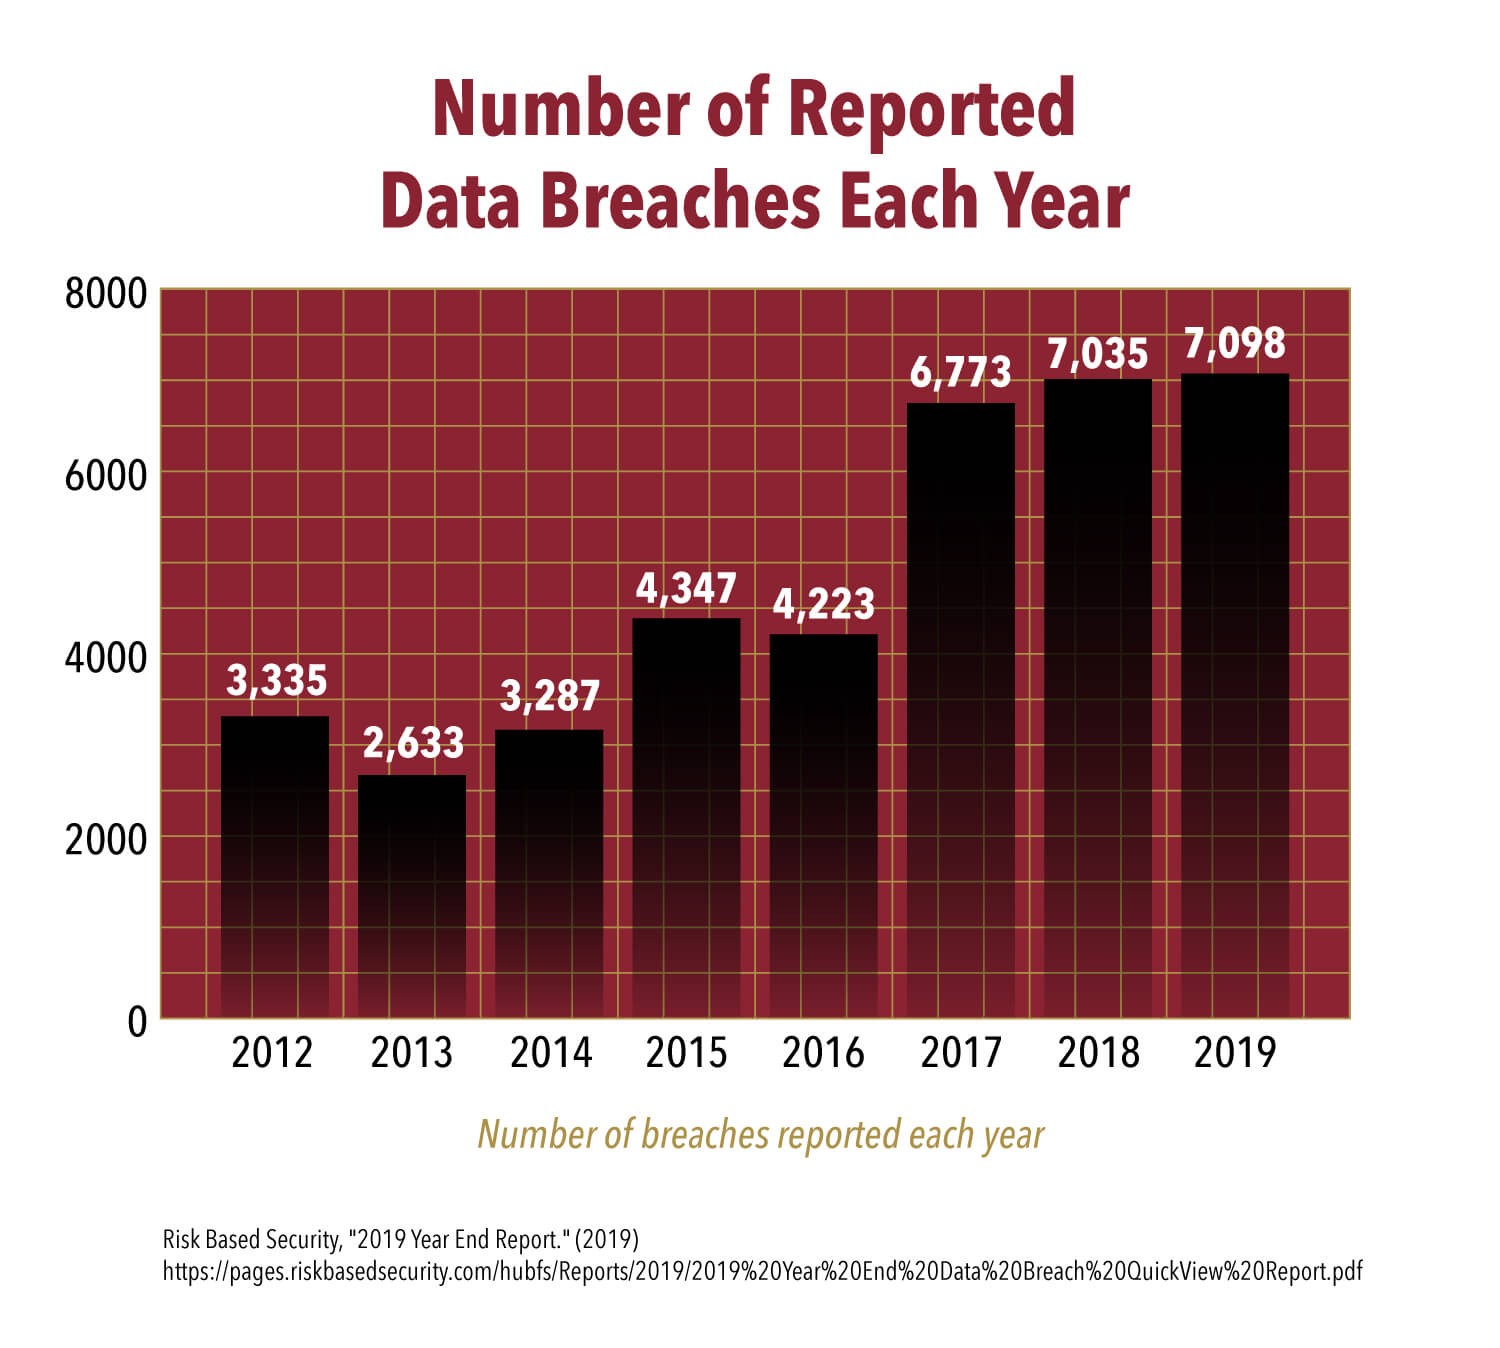 Charts showing number of reported data breaches and lost records each year